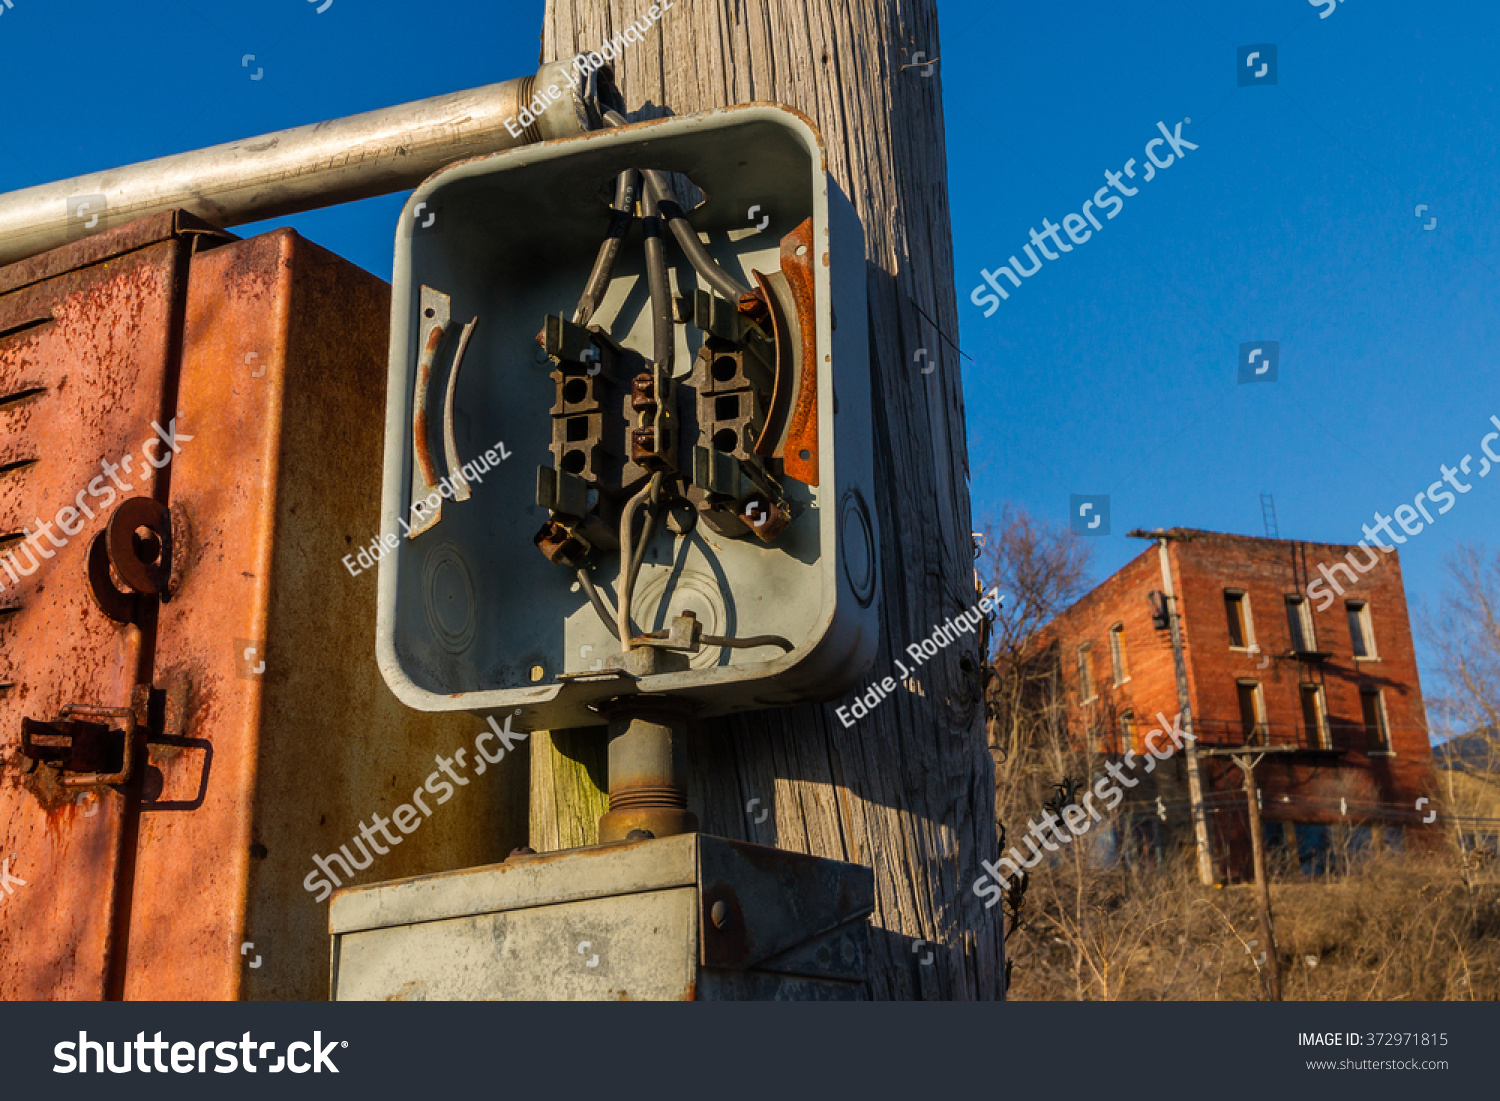 Breaker Box On Telephone Pole Stock Photo (Edit Now) 372971815